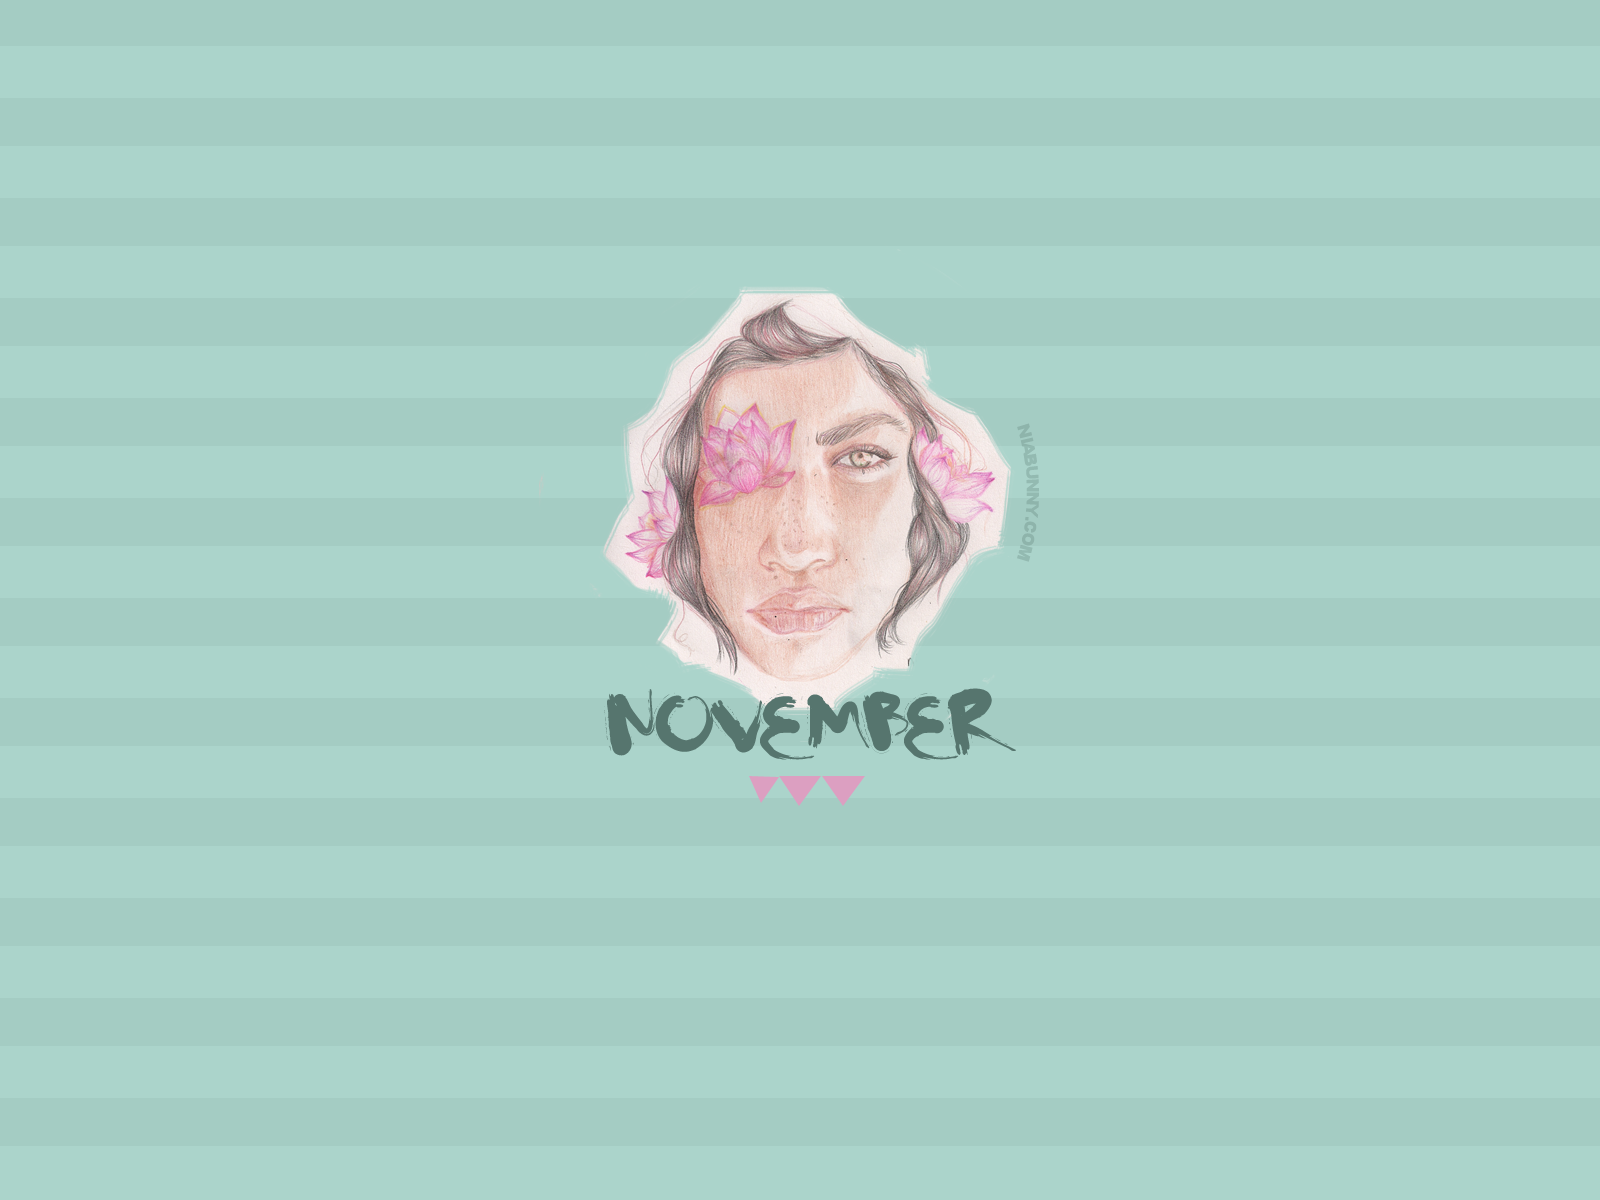 November Wallpaper Niabunny.com